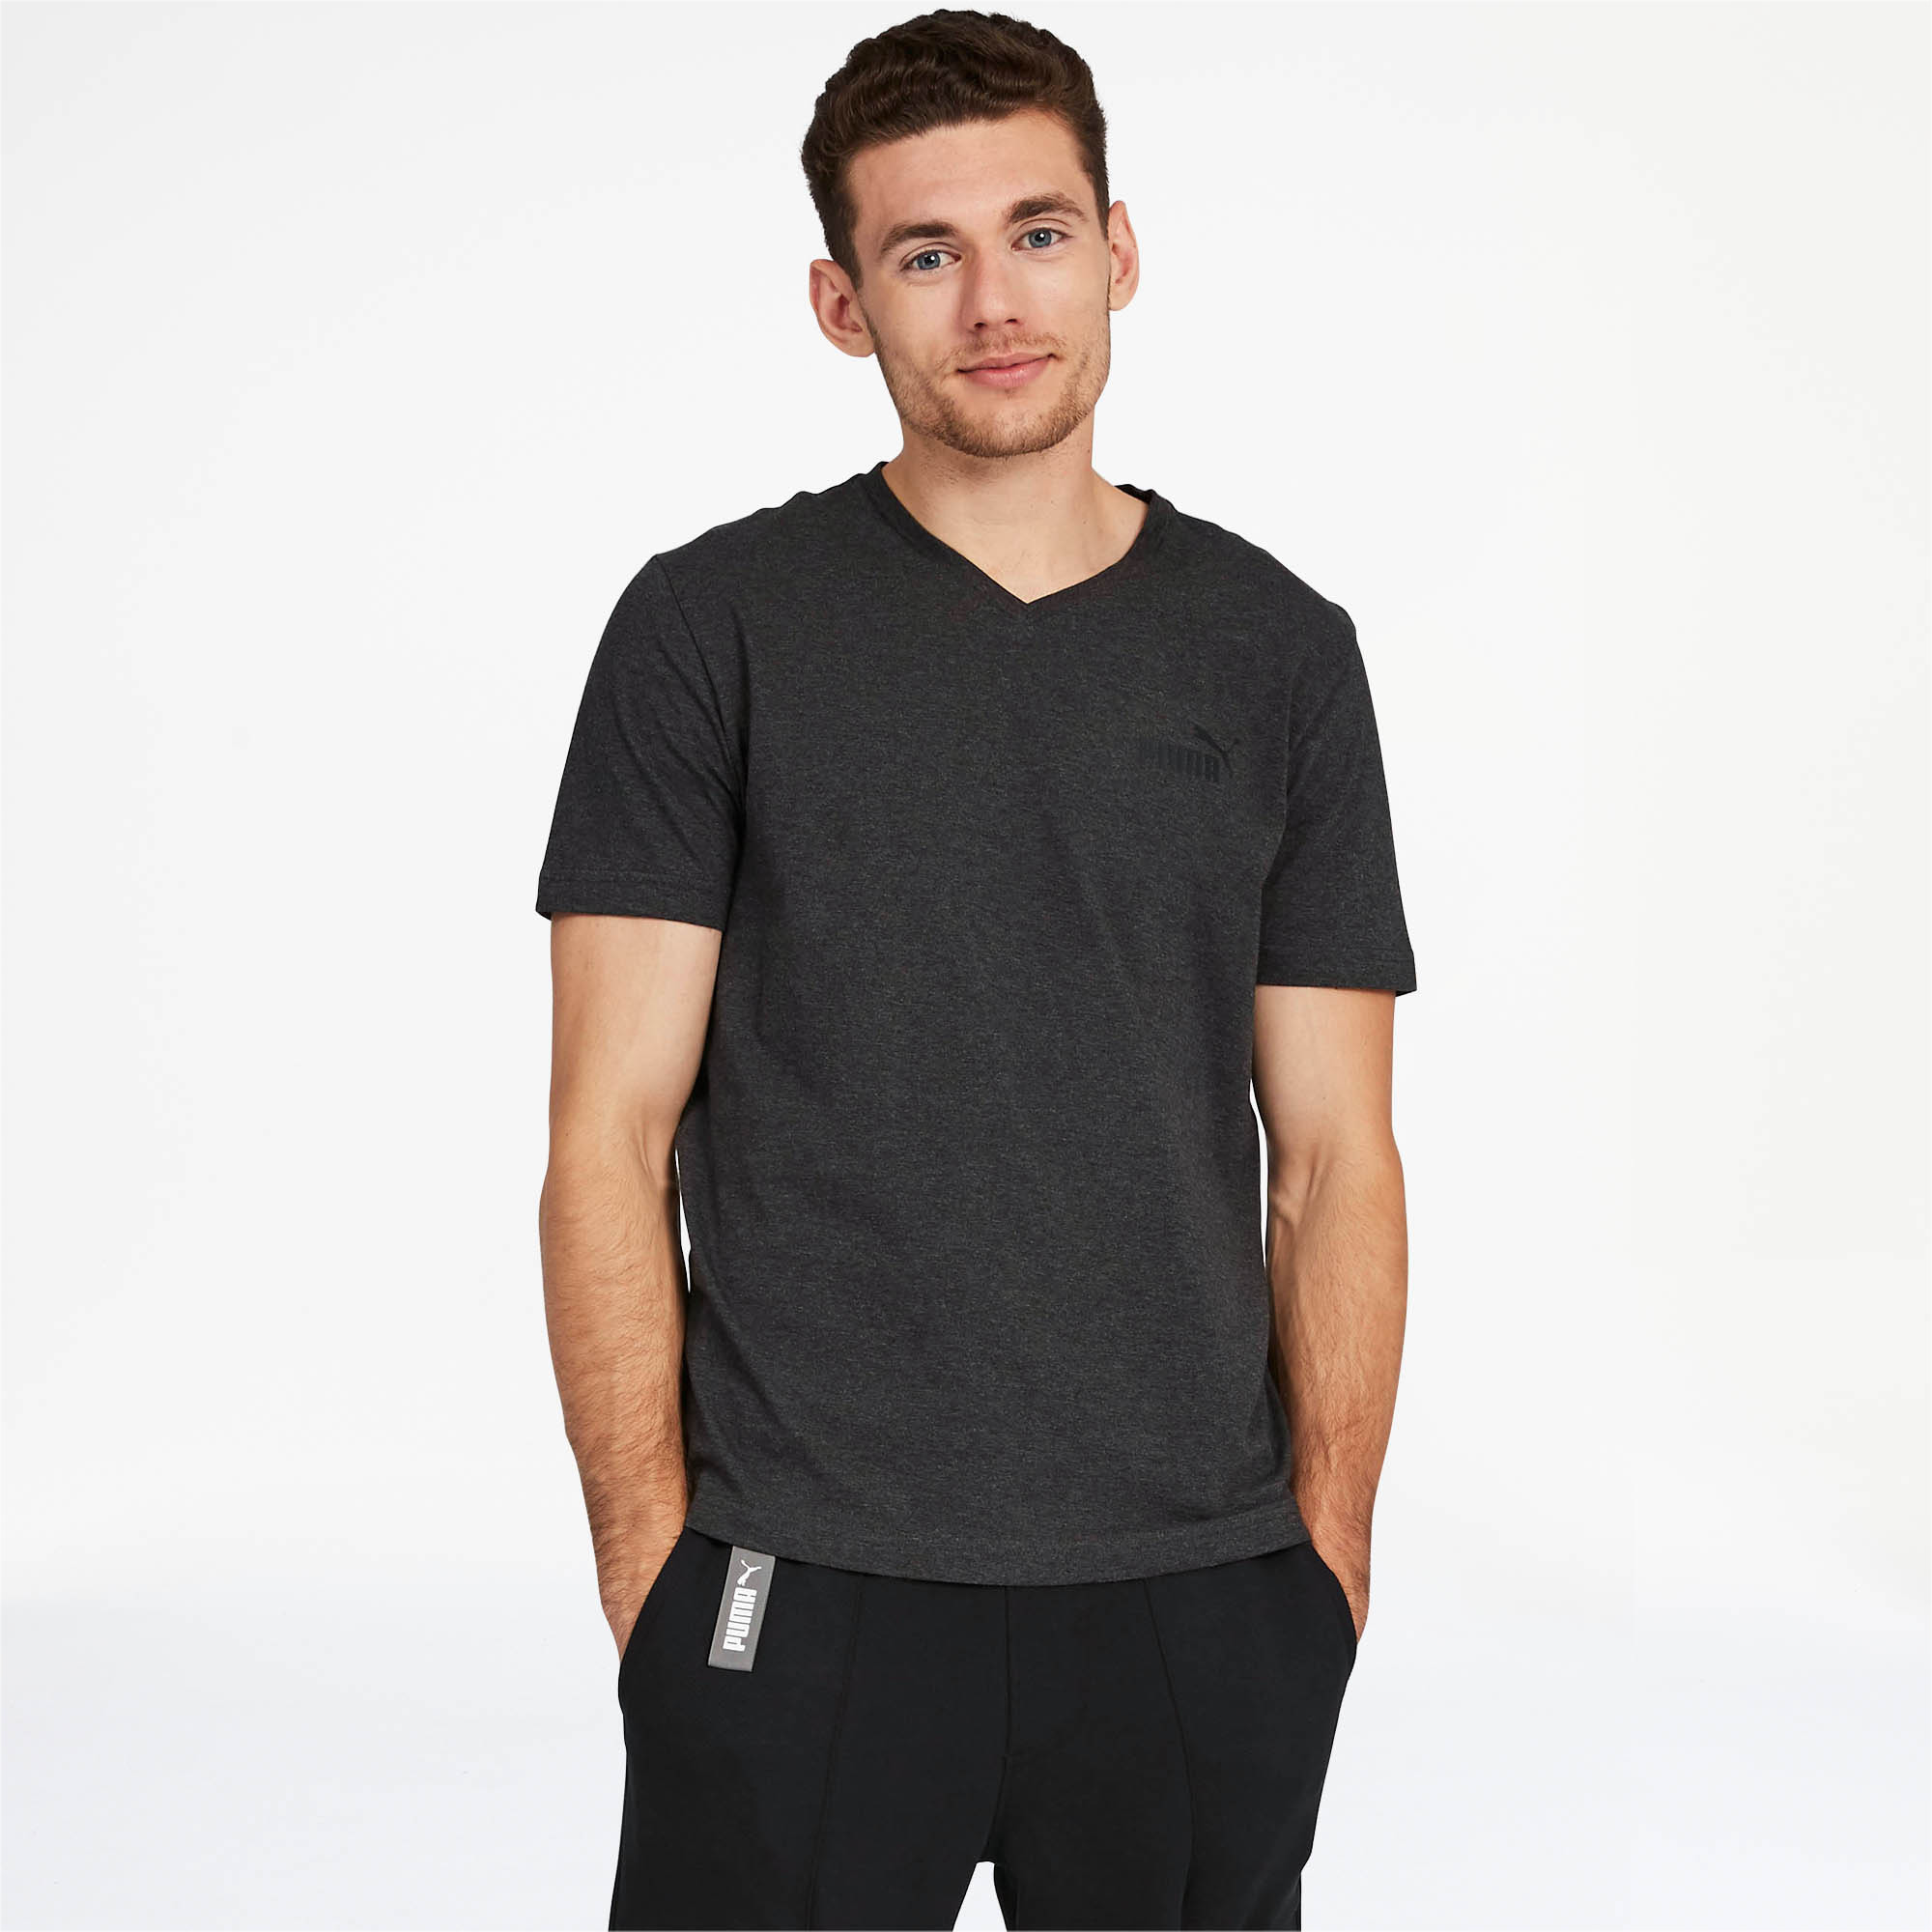 PUMA-Essentials-Men-039-s-V-Neck-Tee-Men-Tee-Basics thumbnail 3